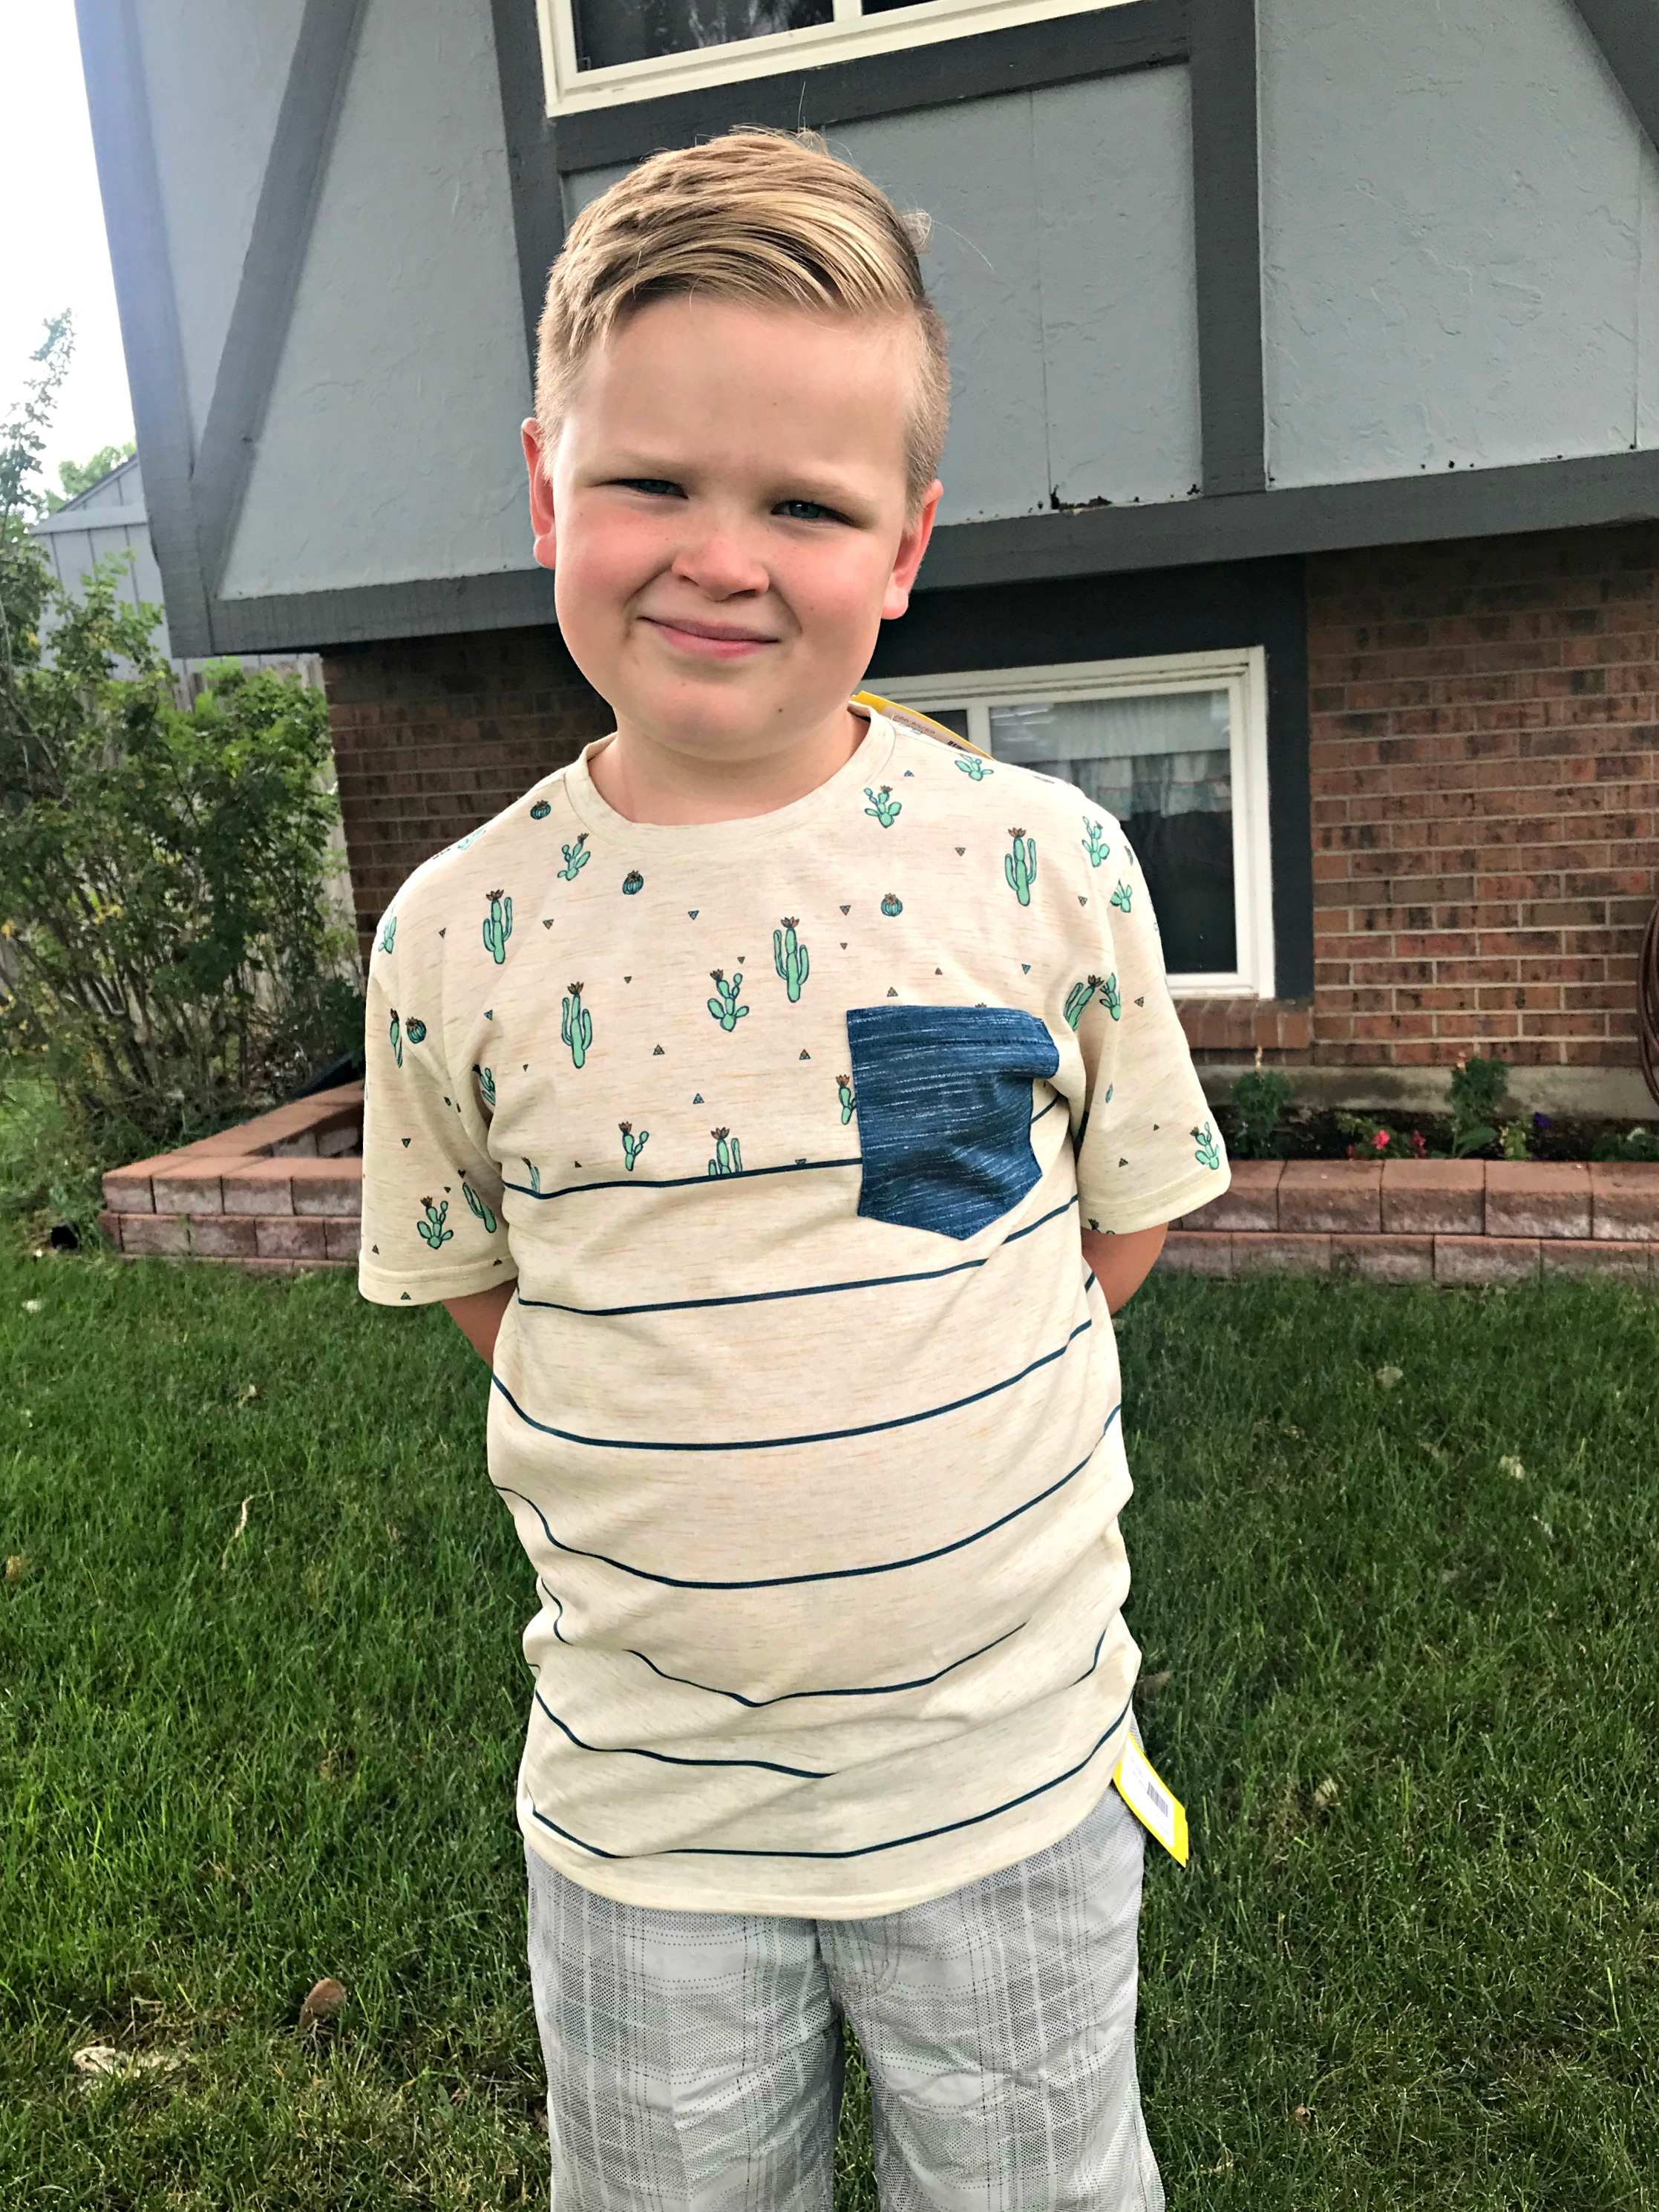 Stitch Fix Kids, Stitch Fix kids review, stitch fix kids unboxing, kids school fashion, back to school fashion for kids, kids fashion, Stitch Fix, what comes in a stitch fix for kids, stitch fix for boys, stitch fix boys